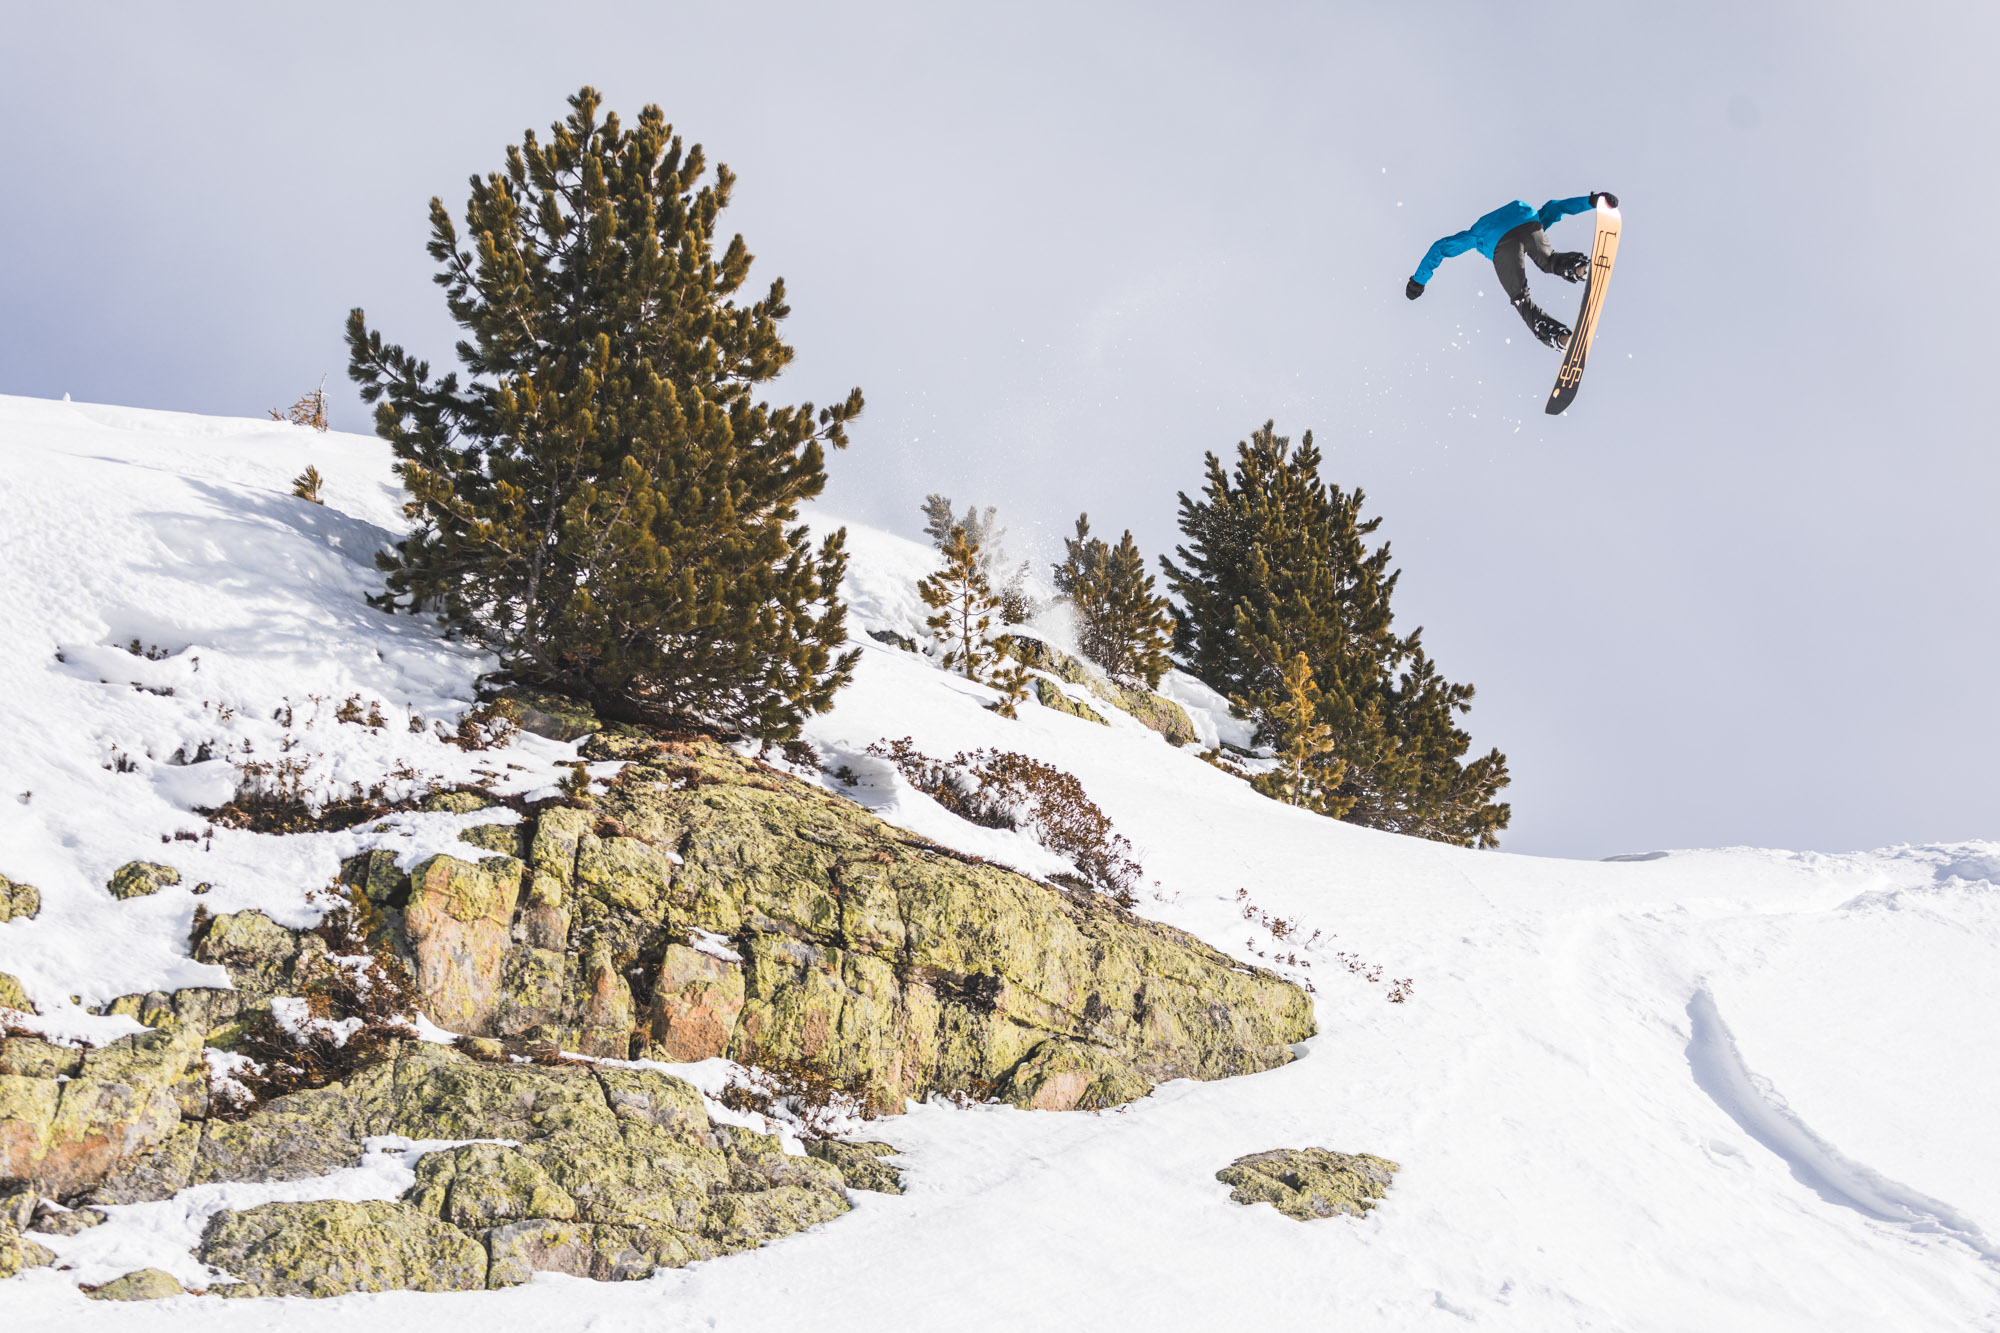 Action - Snowboarding, France